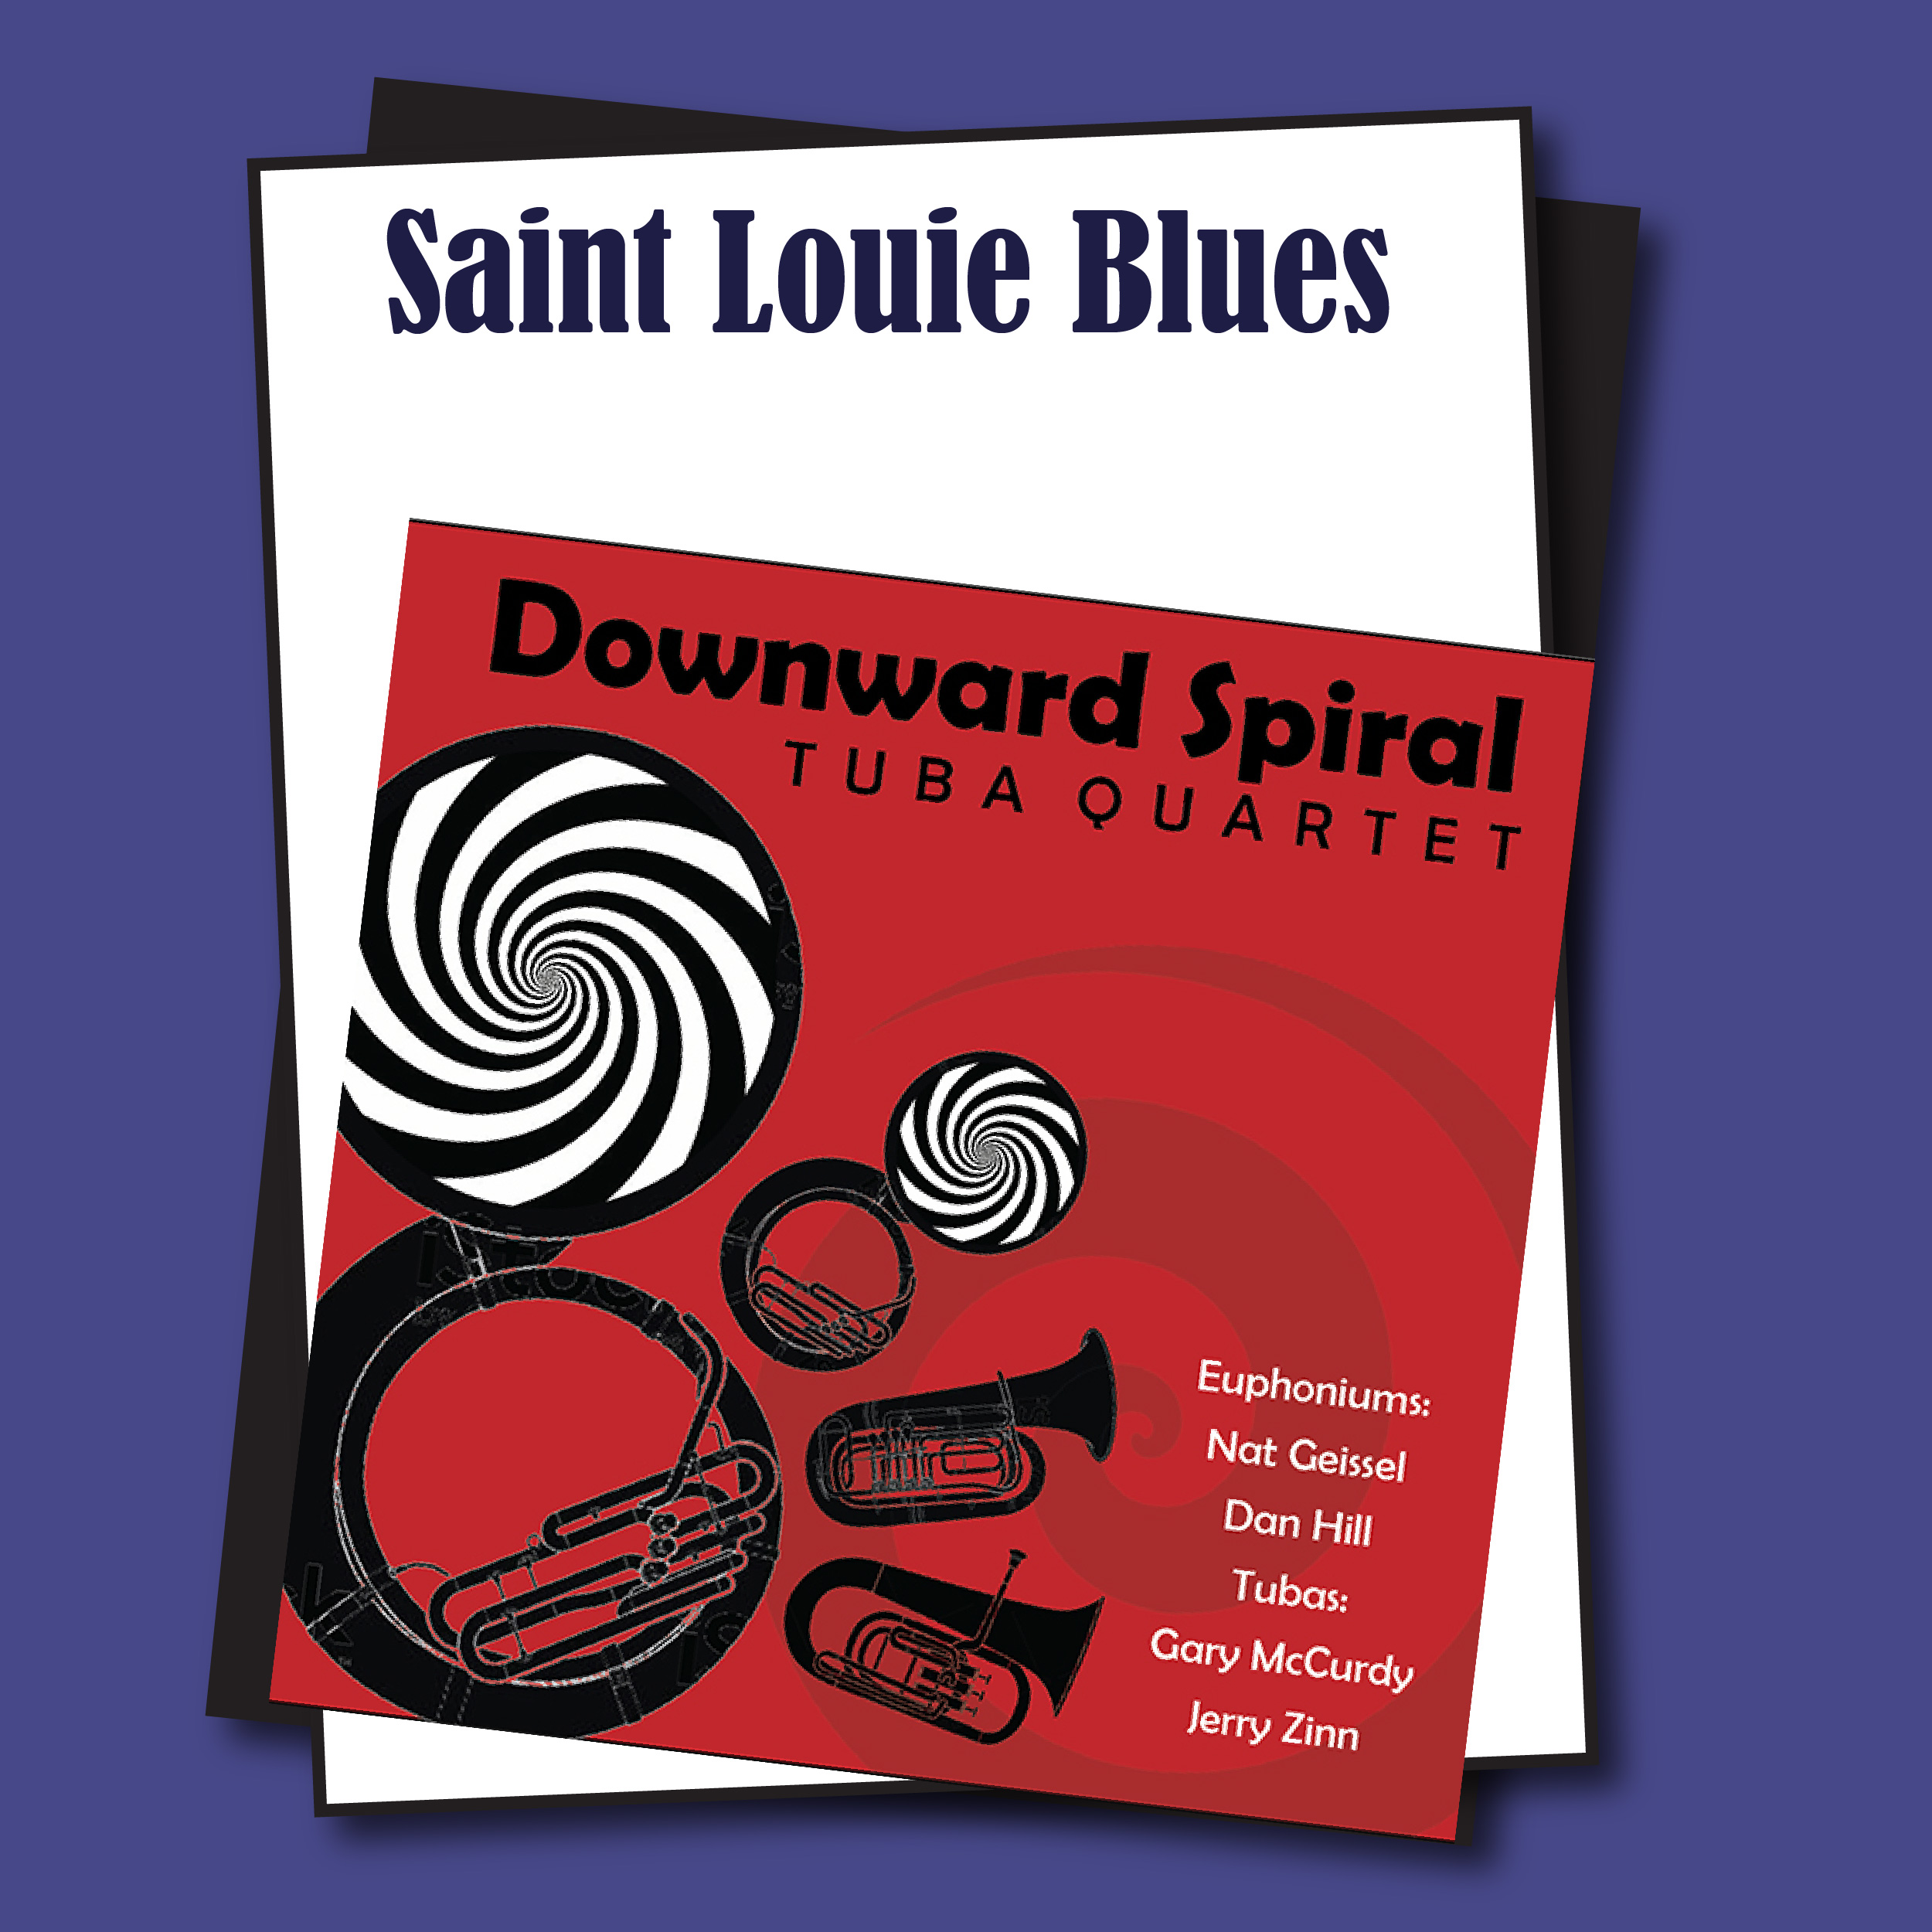 Saint Louie Blues Download [TDL81]